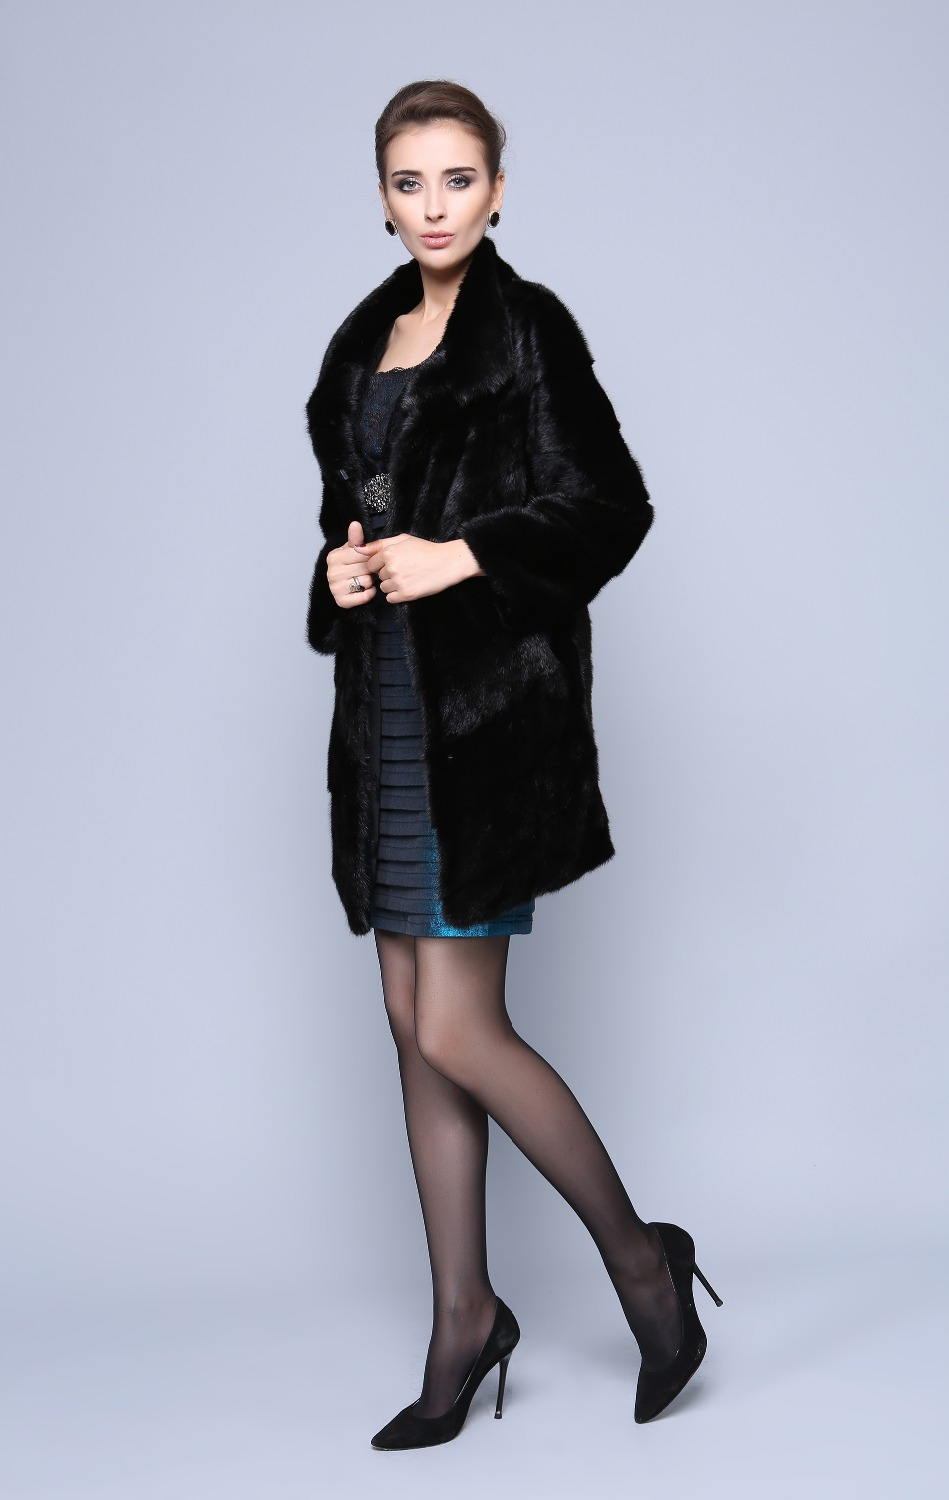 Compare Prices on Full Length Mink Coat for Sale- Online Shopping